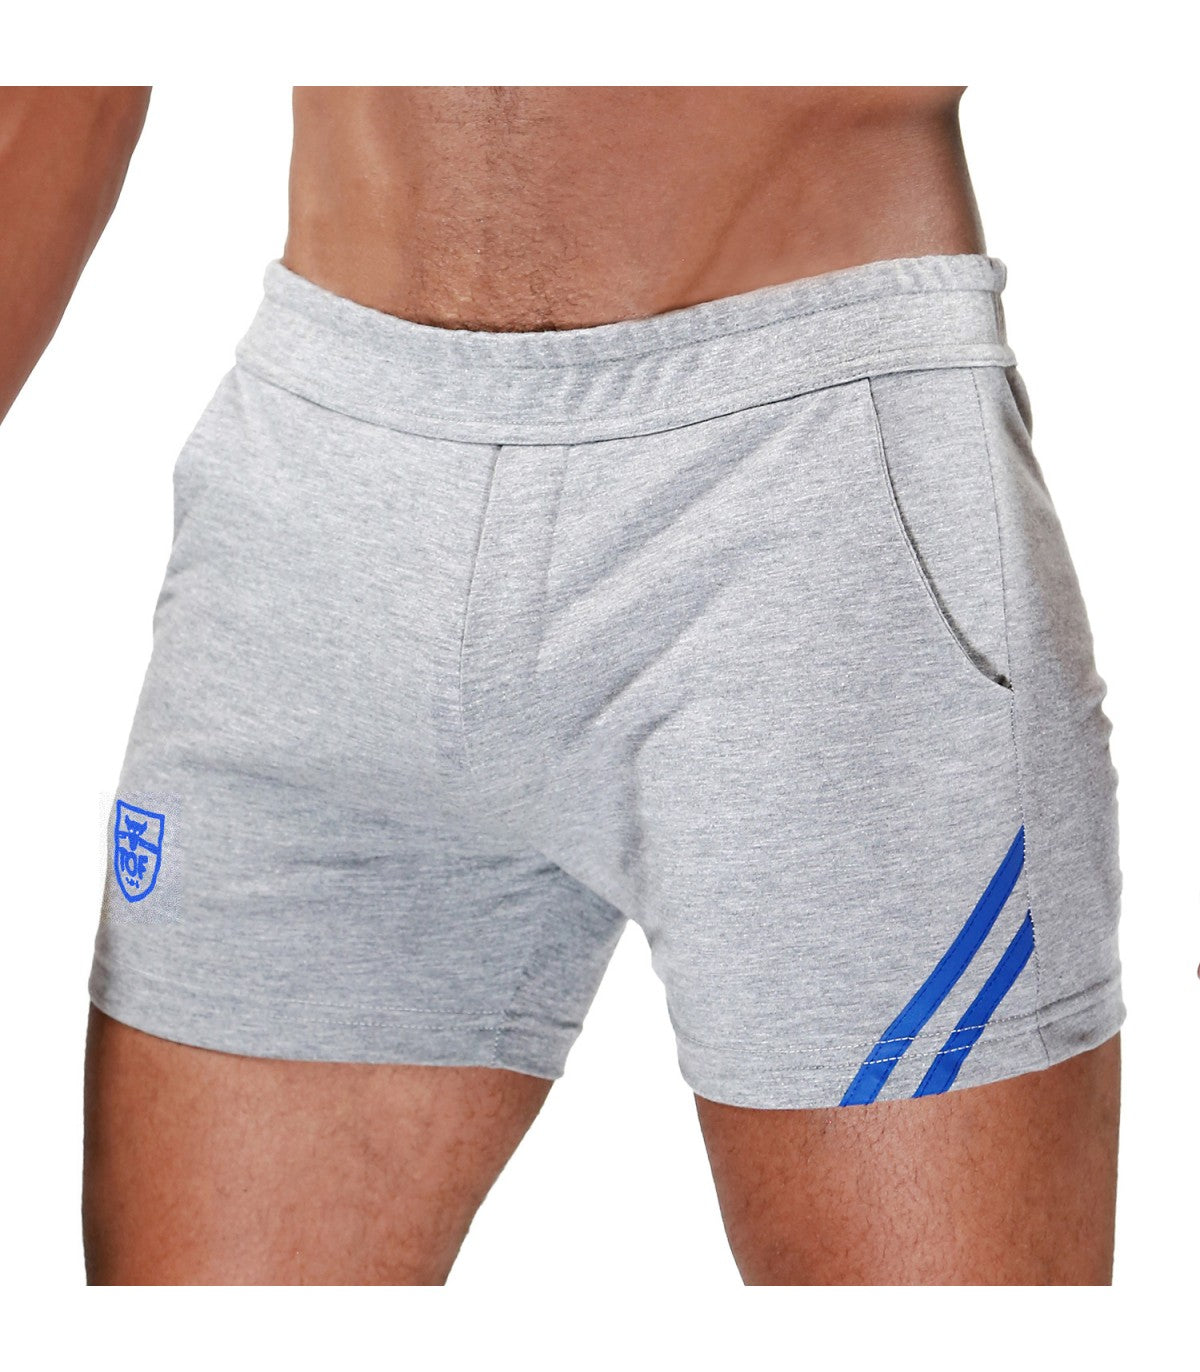 TOF Paris short grey